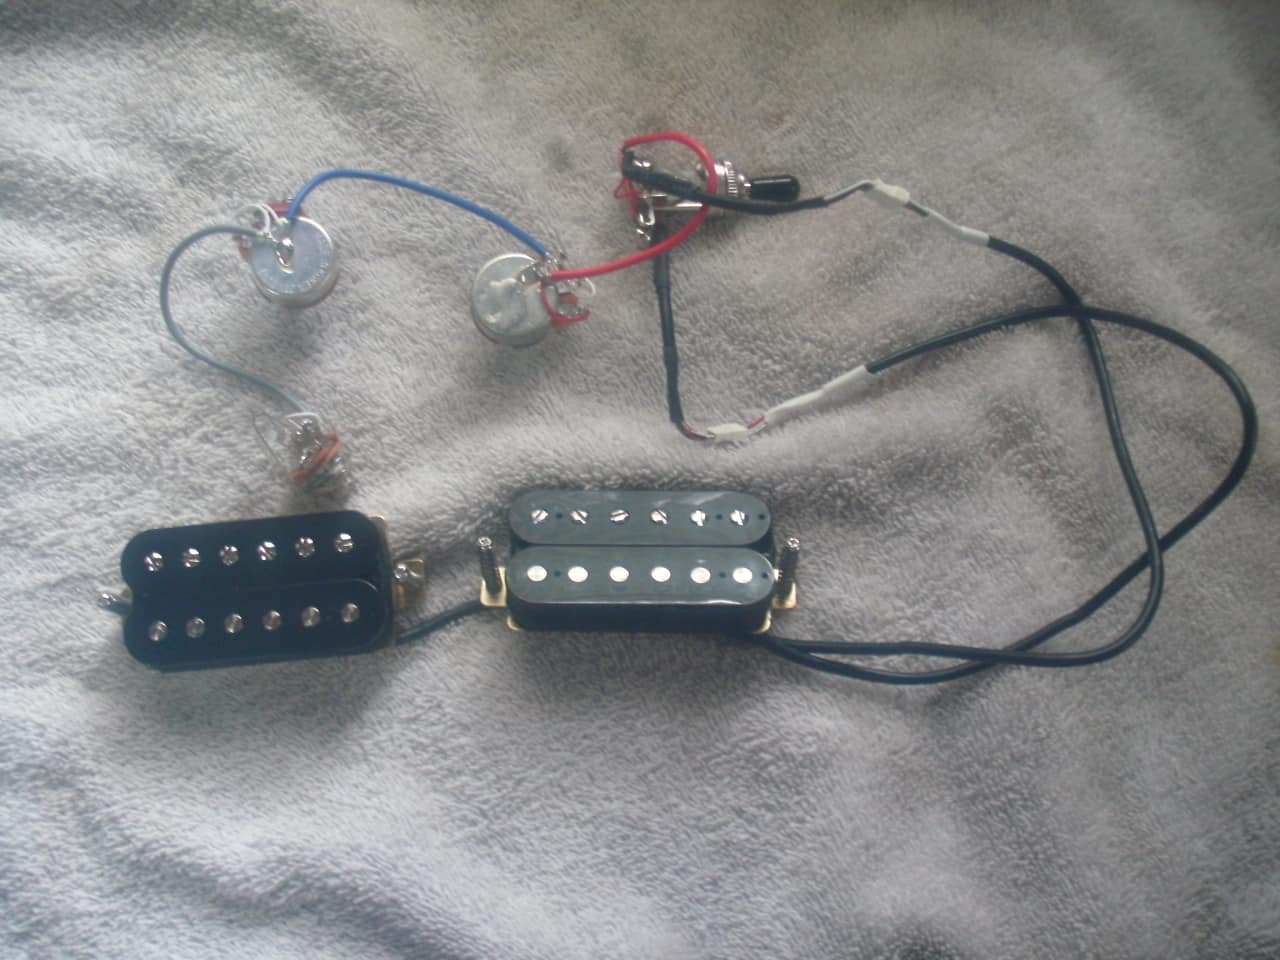 Gretsch Wiring Harness Solutions P90 Scintillating Ovation Ideas Best Image